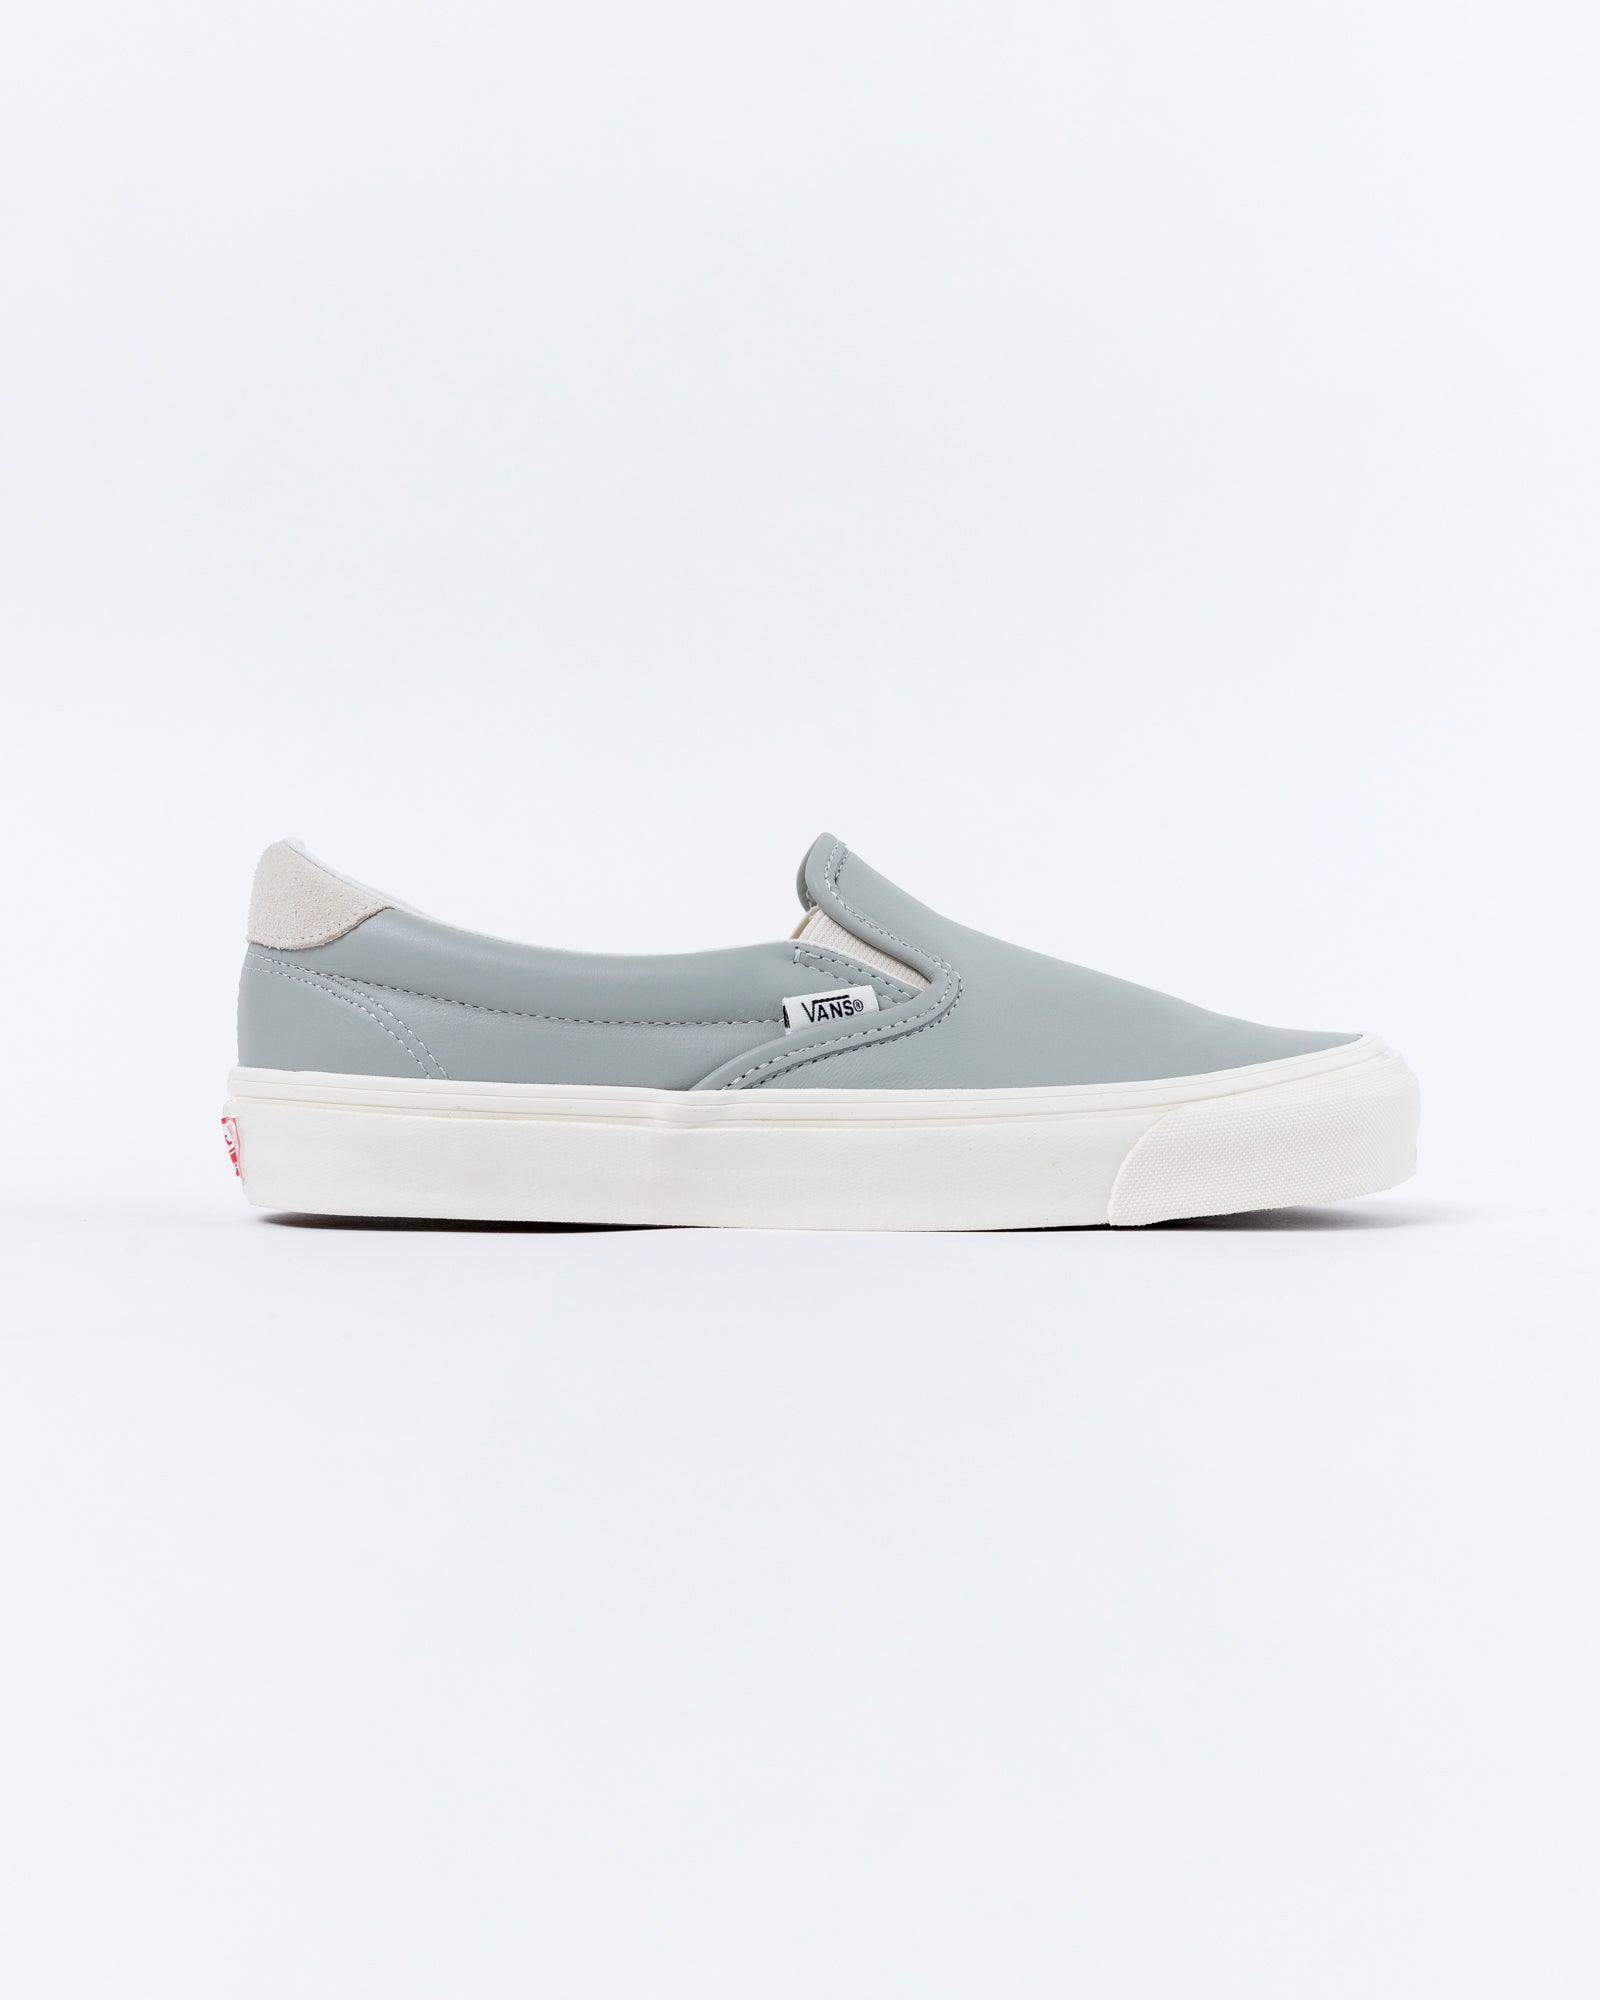 8f9bb49844 UA OG Slip-On 59 LX (Leather   Suede) in Gray